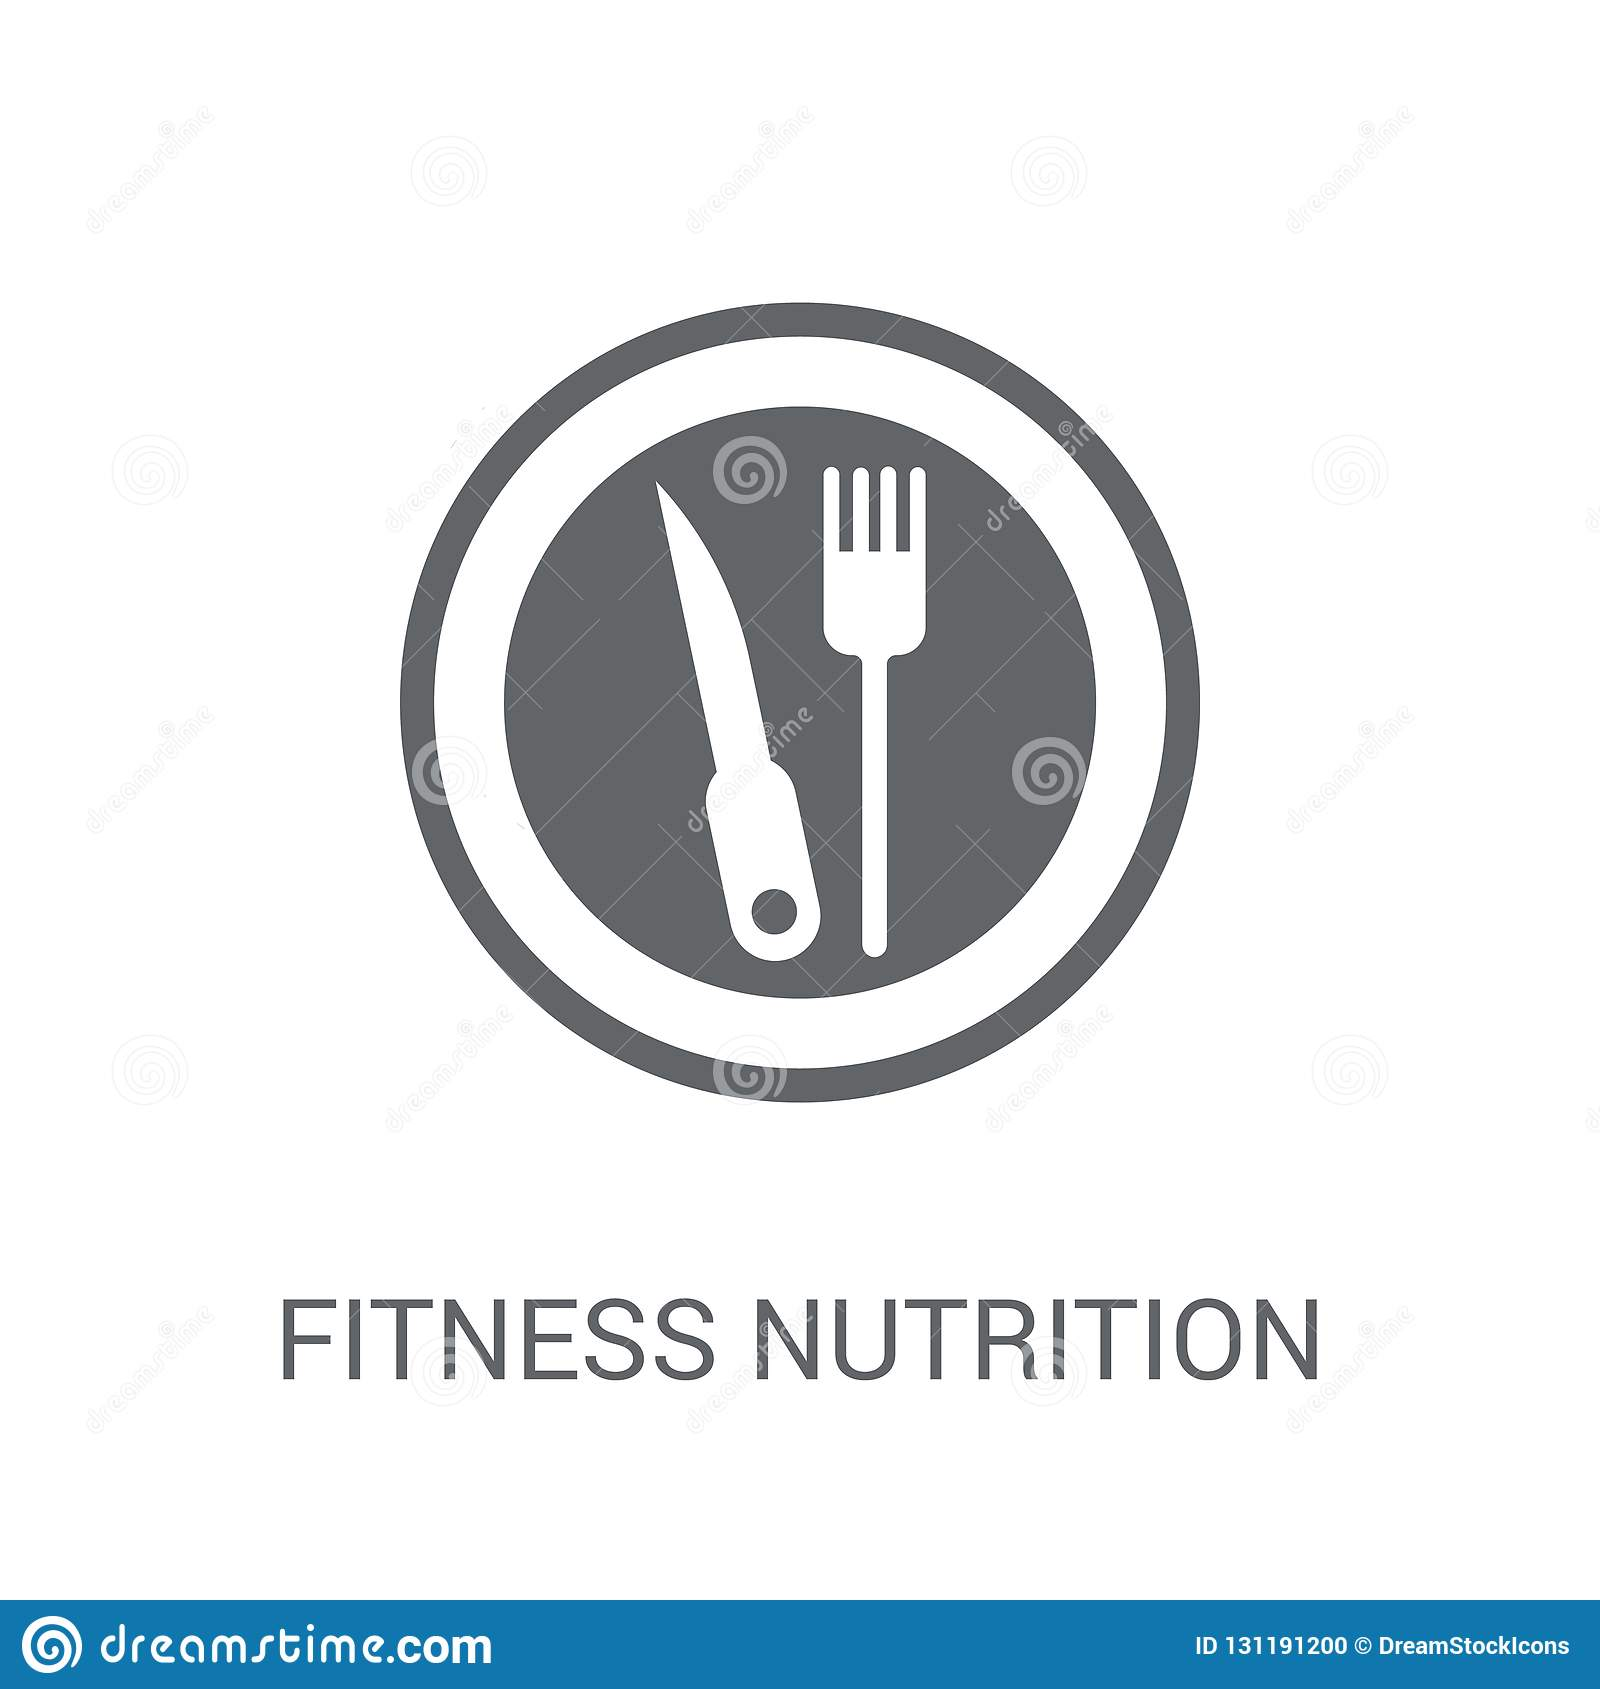 Fitness Nutrition icon. Trendy Fitness Nutrition logo concept on